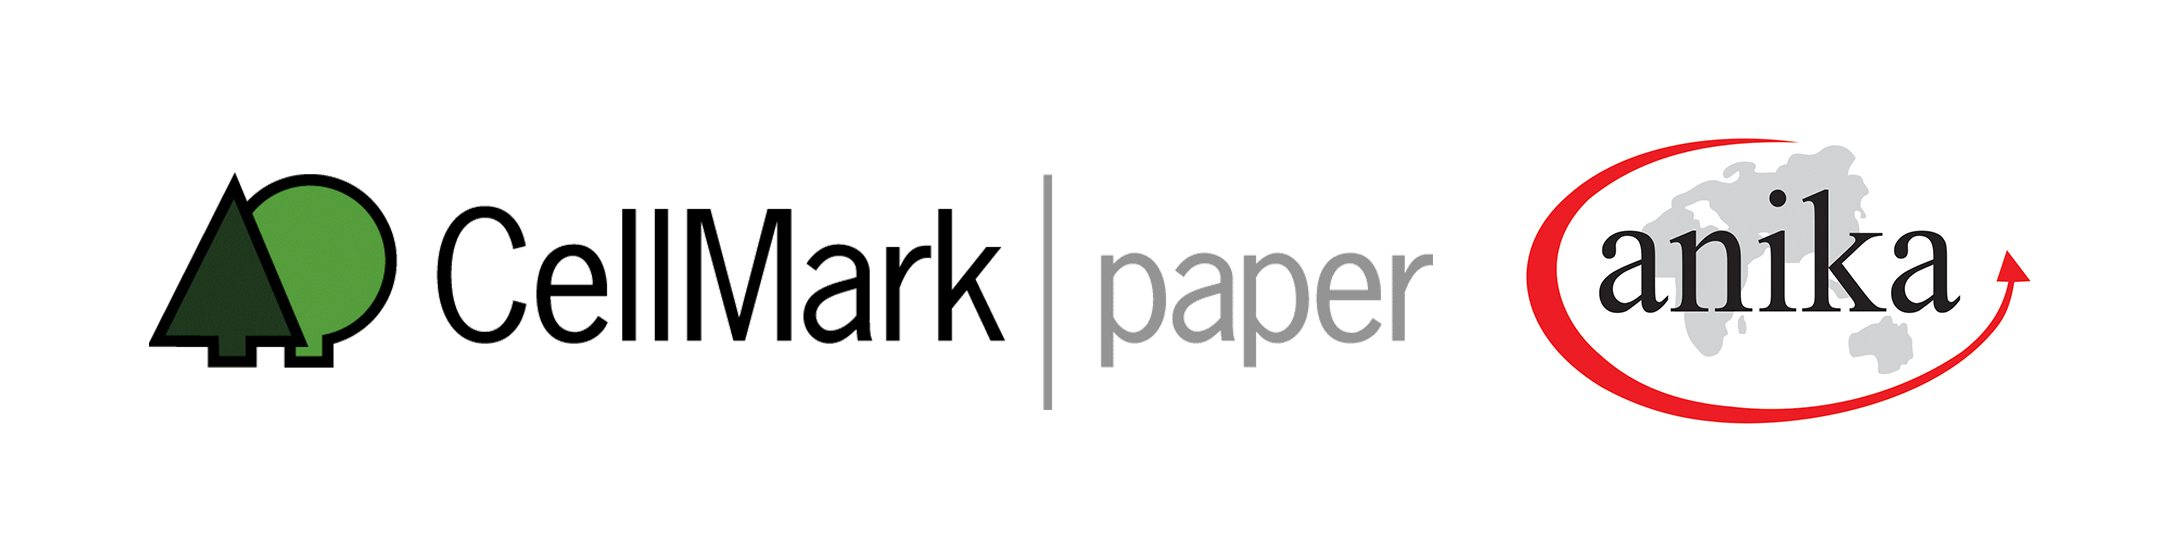 cellmark paper and anika international logos side by side